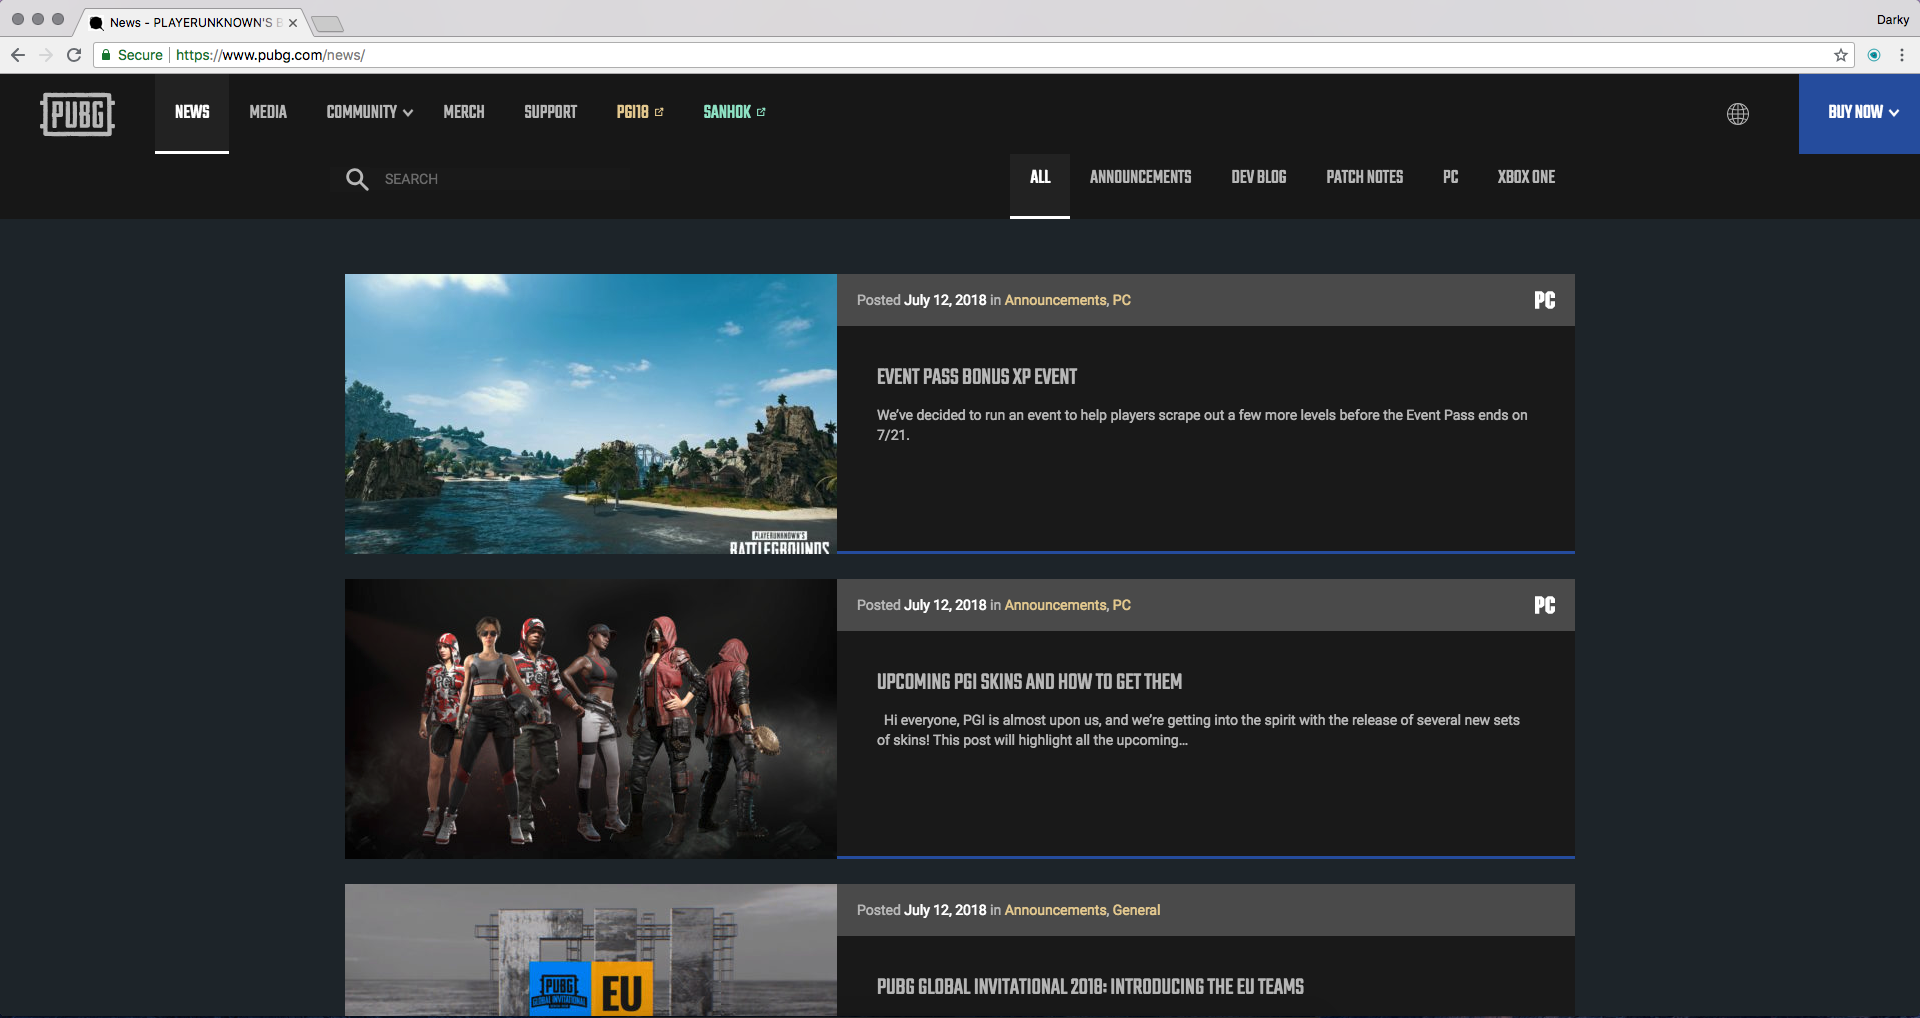 PUBG Night mode - how to enable it | Night Eye